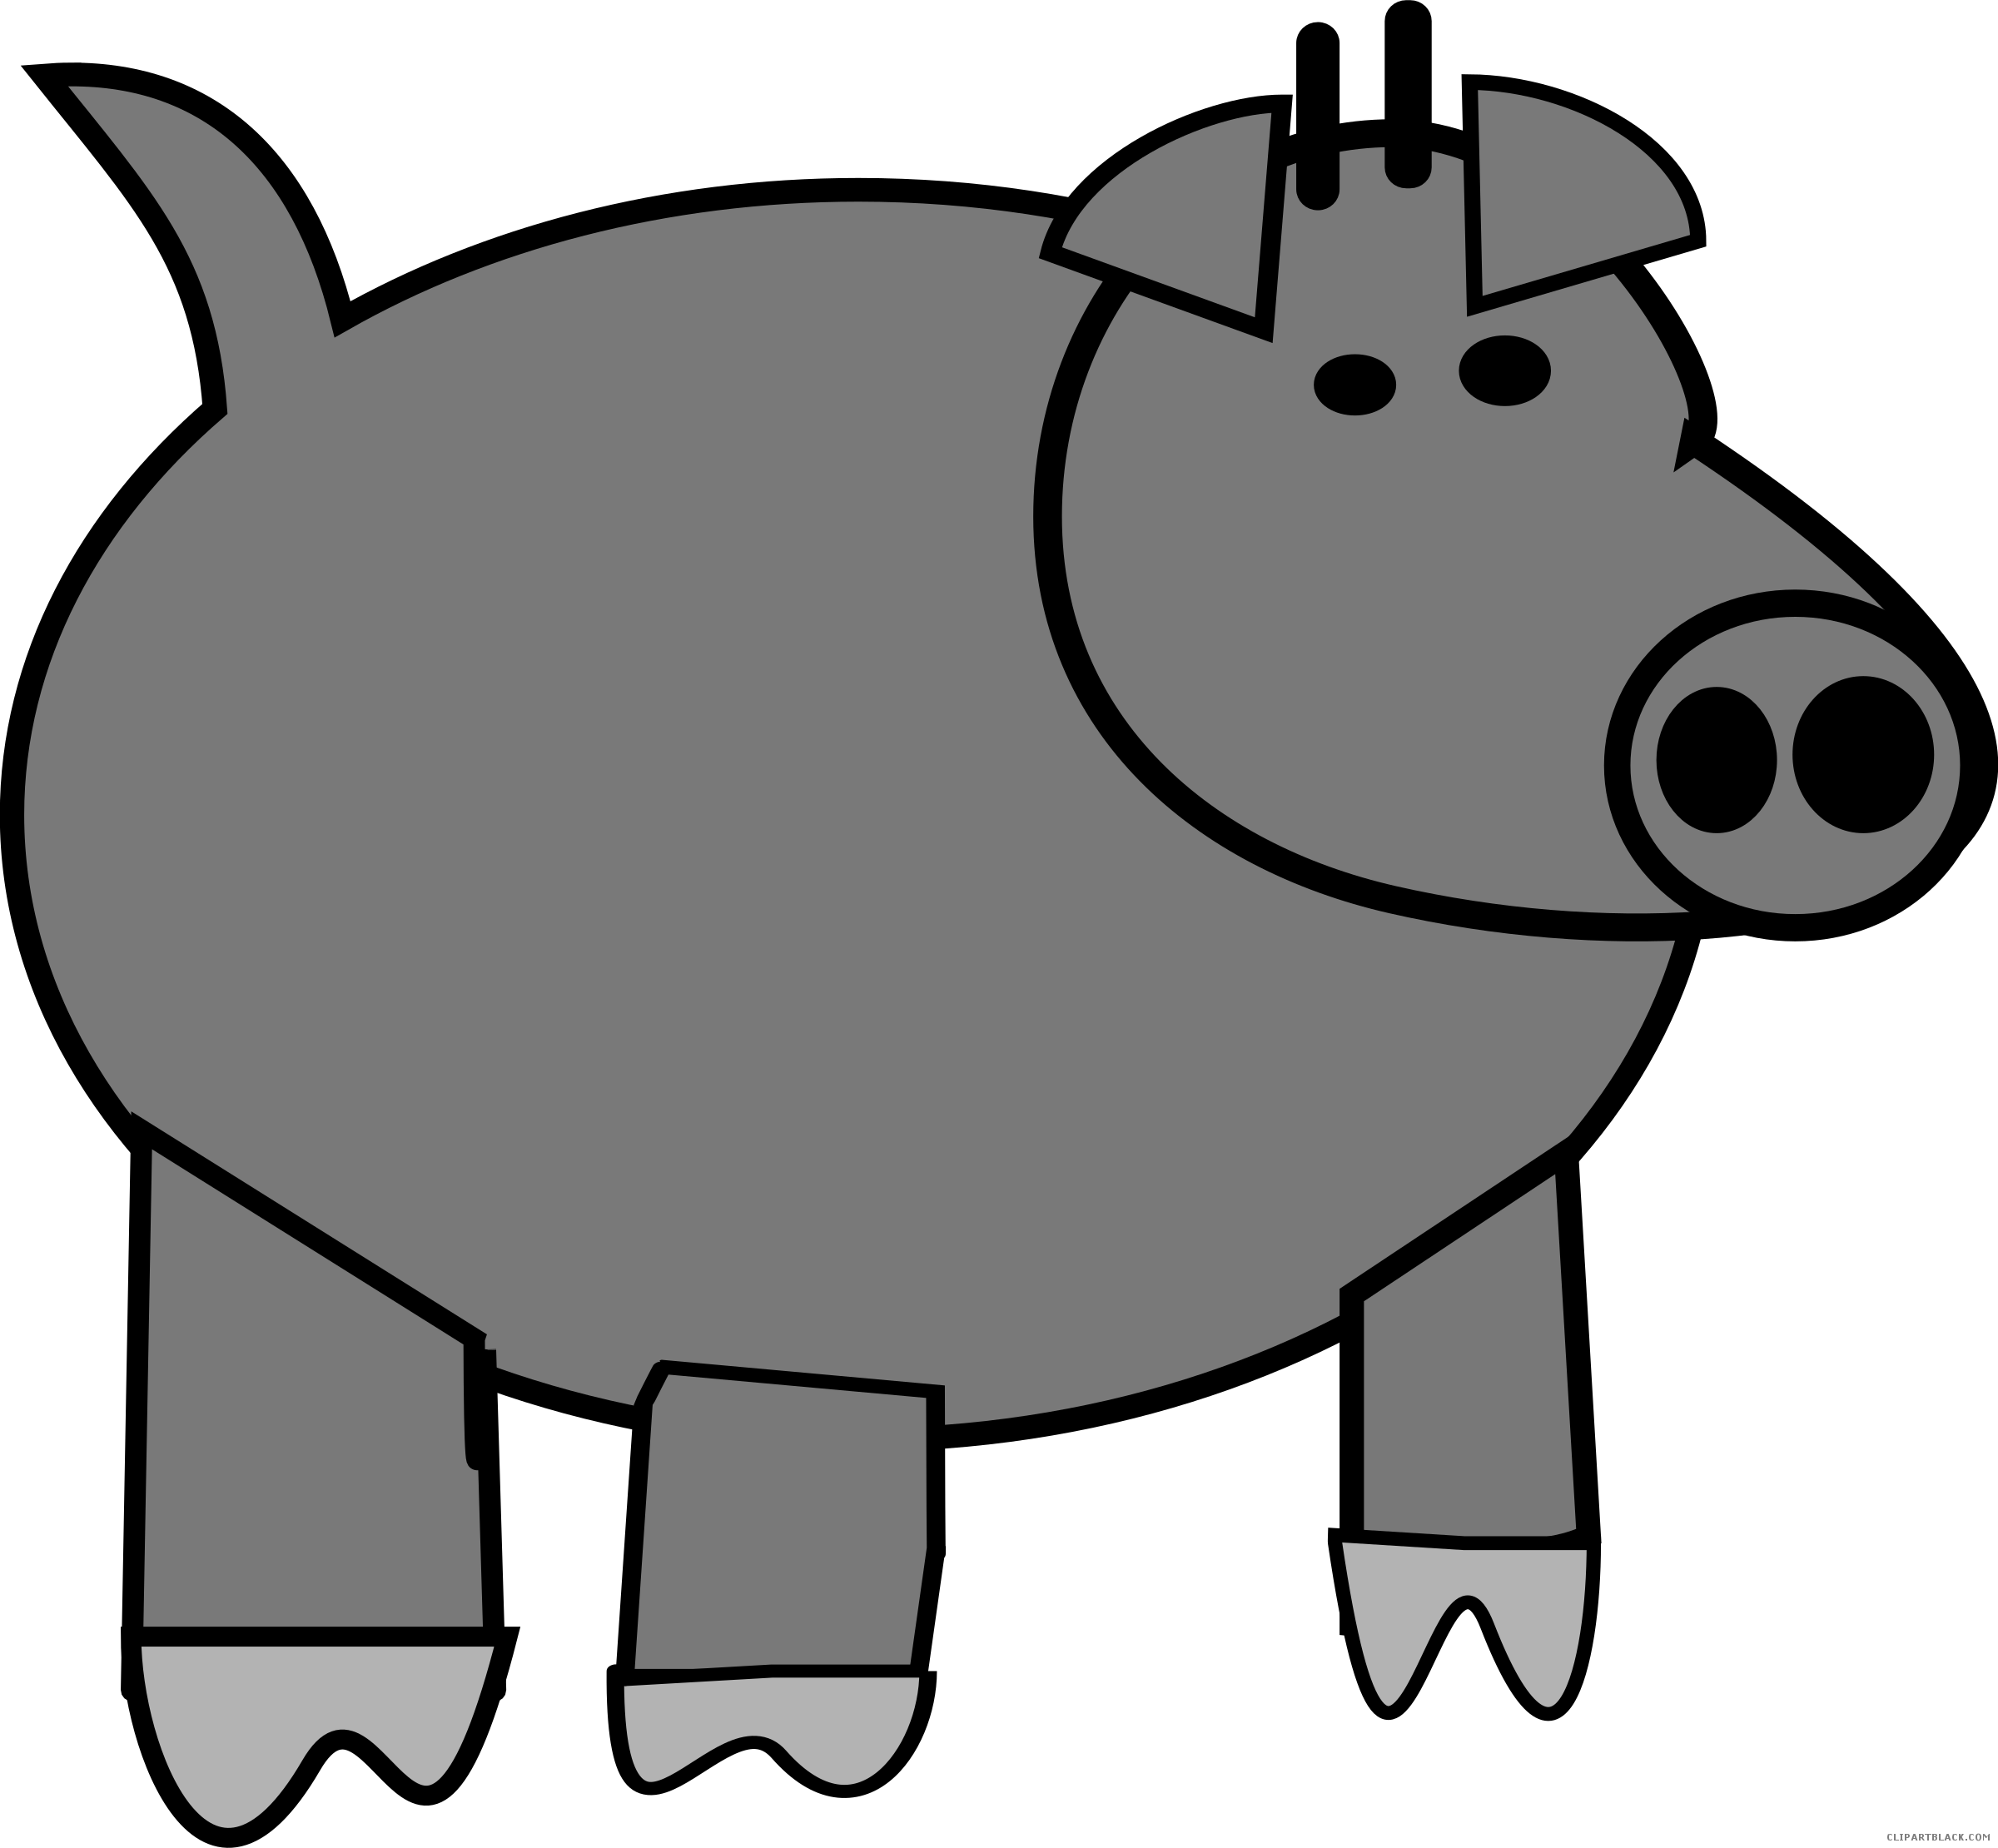 minecraft pig drawing pig clipart minecraft pig minecraft transparent free for pig drawing minecraft